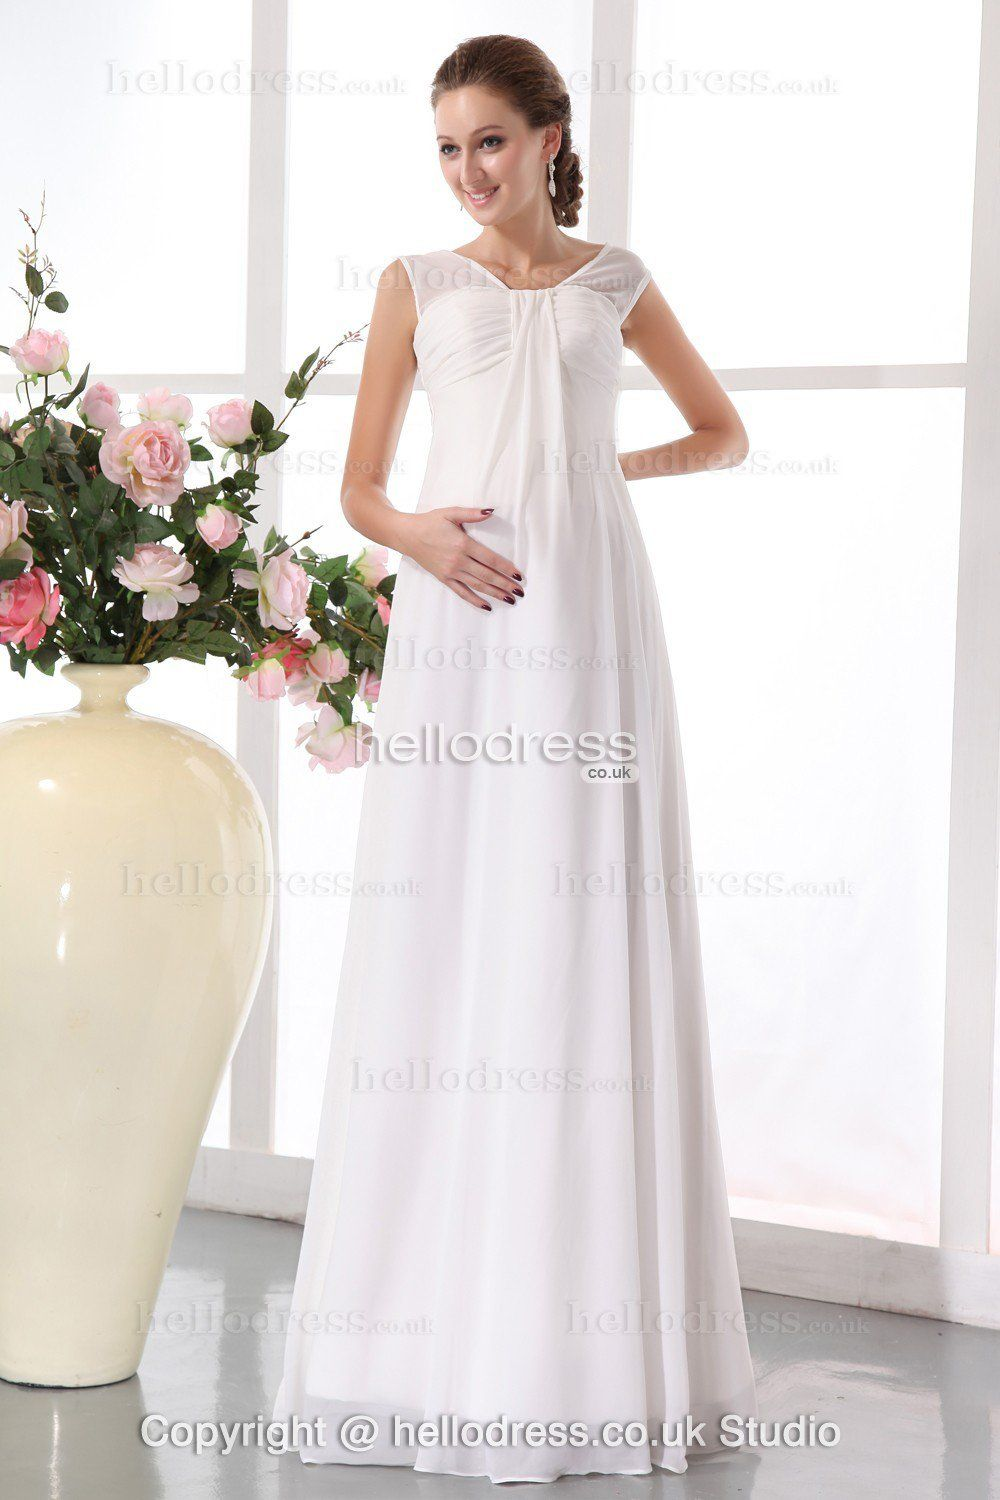 Wedding gowns for pregnant brides pictures google search i wedding gowns for pregnant brides pictures google search ombrellifo Gallery